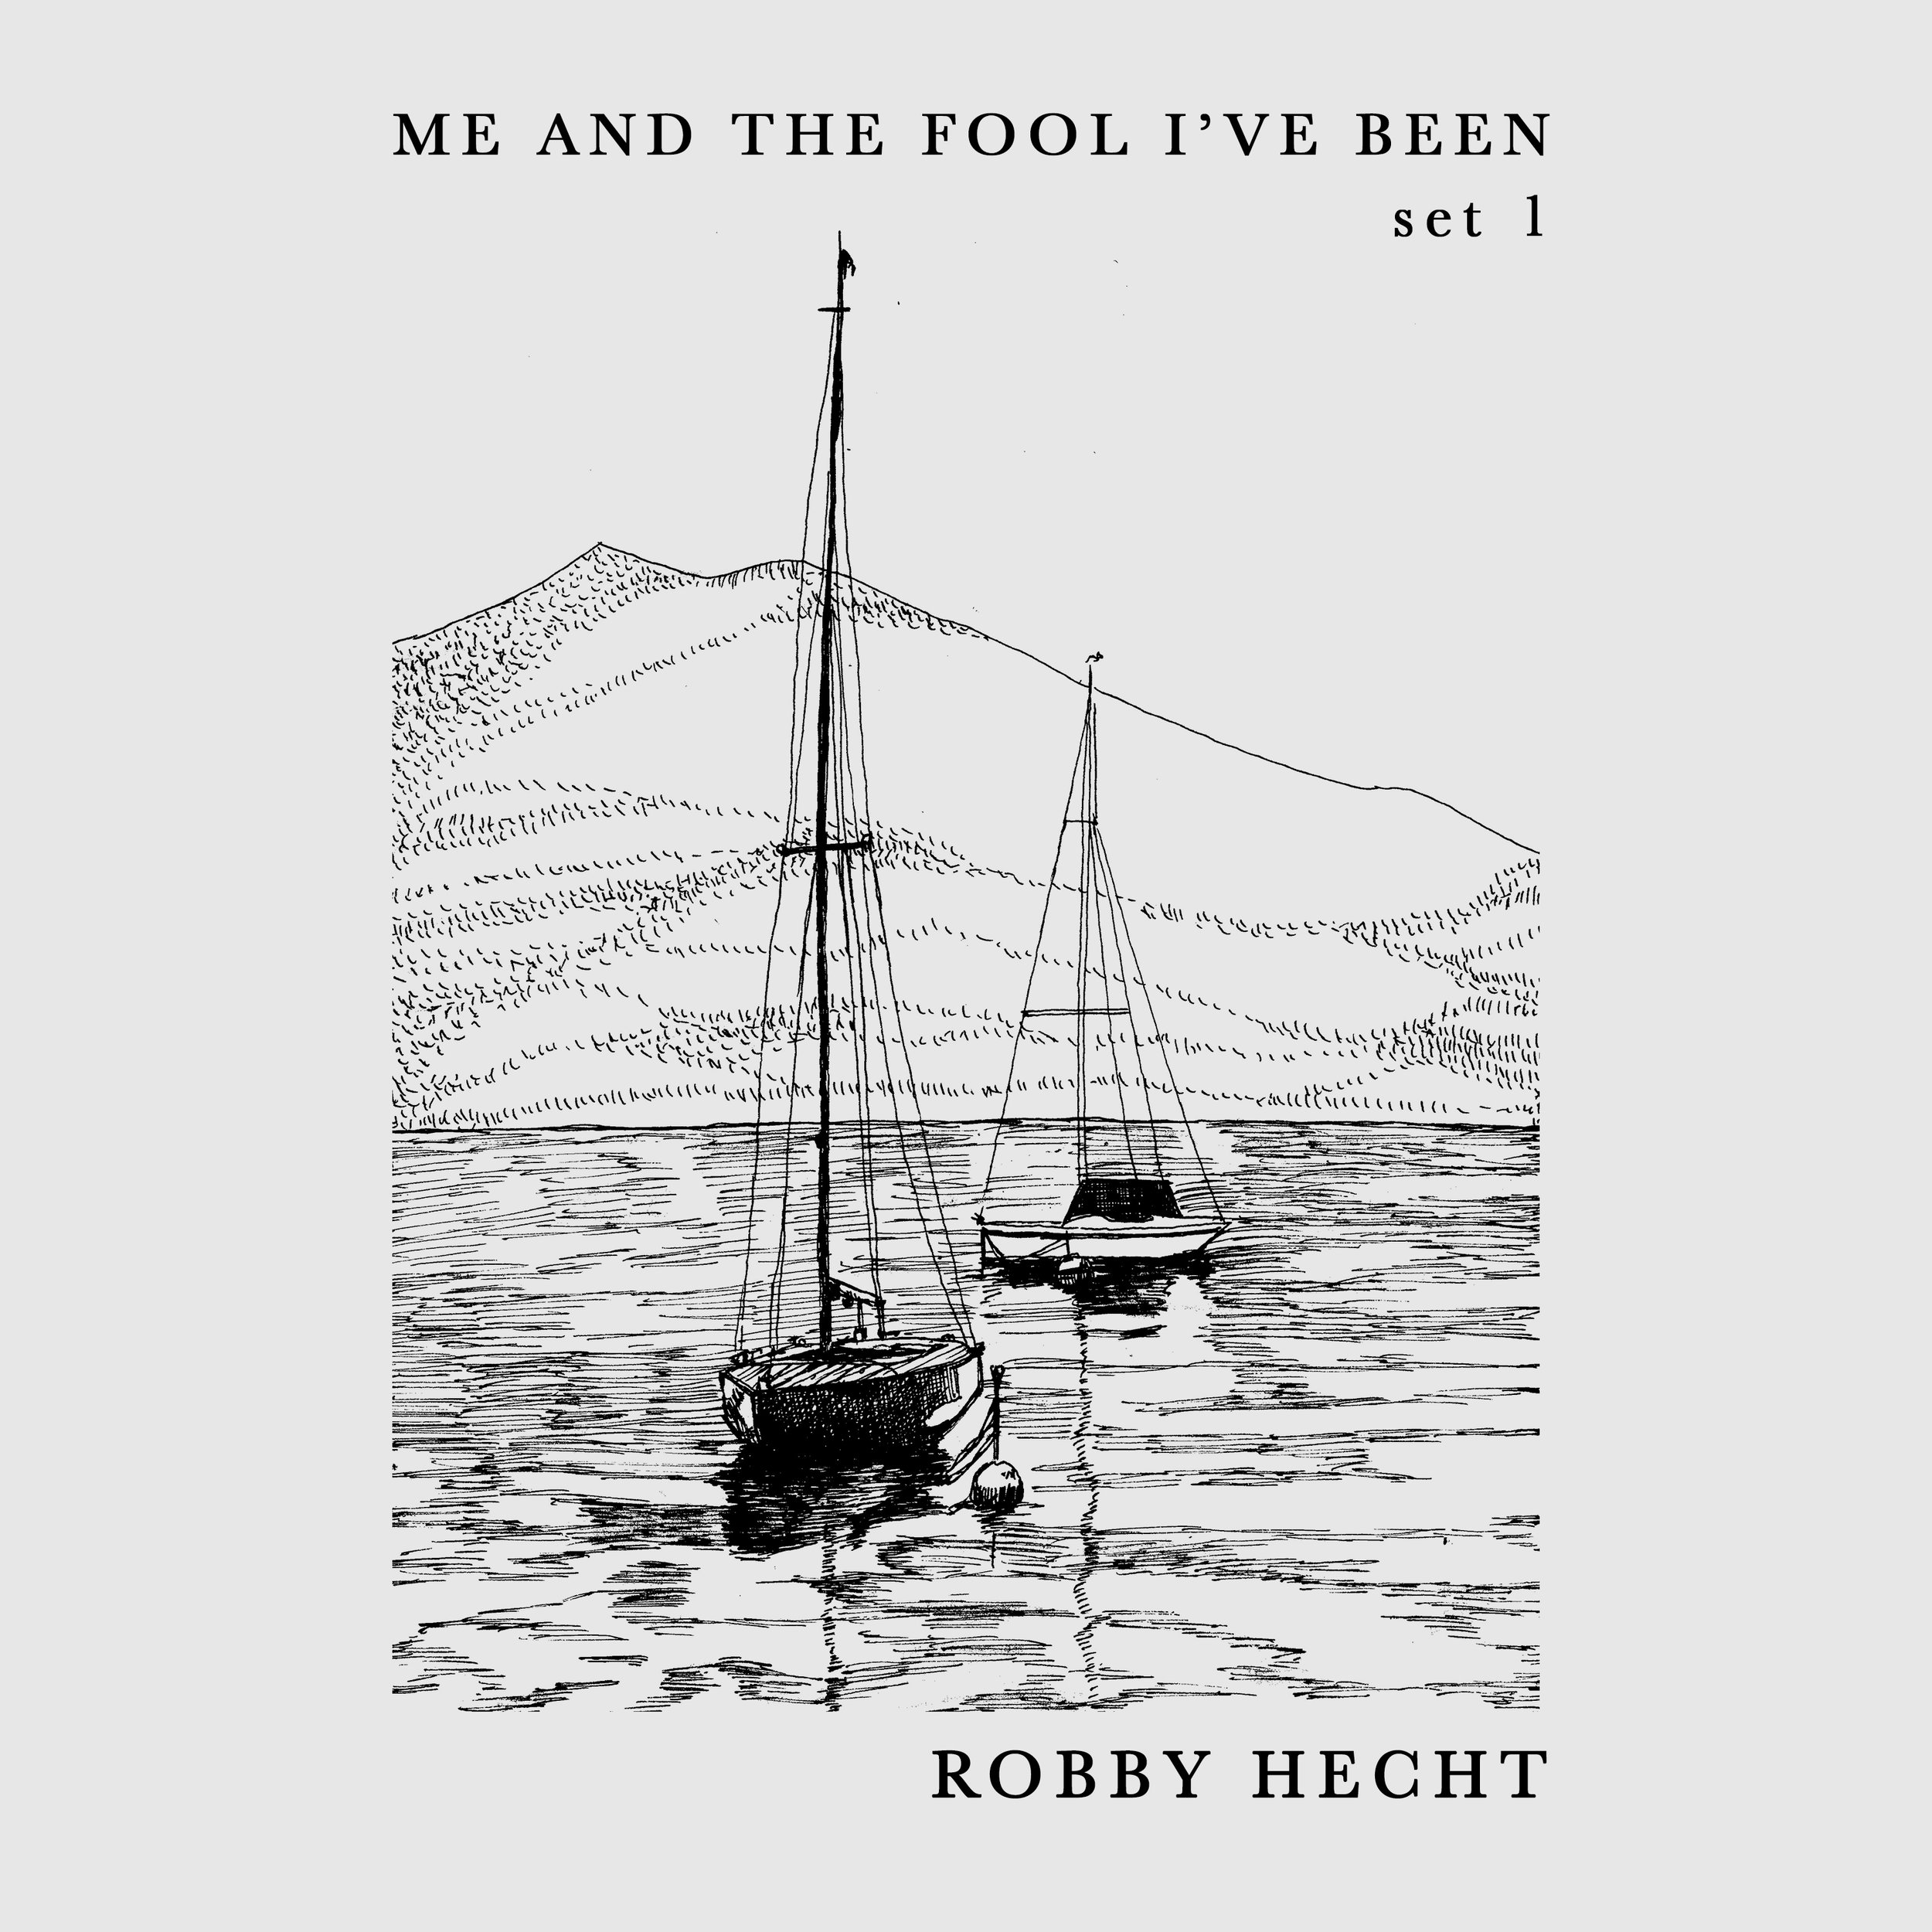 Robby_Hecht_me_and_the_fool_ive_been_set1_COVER-2.jpg